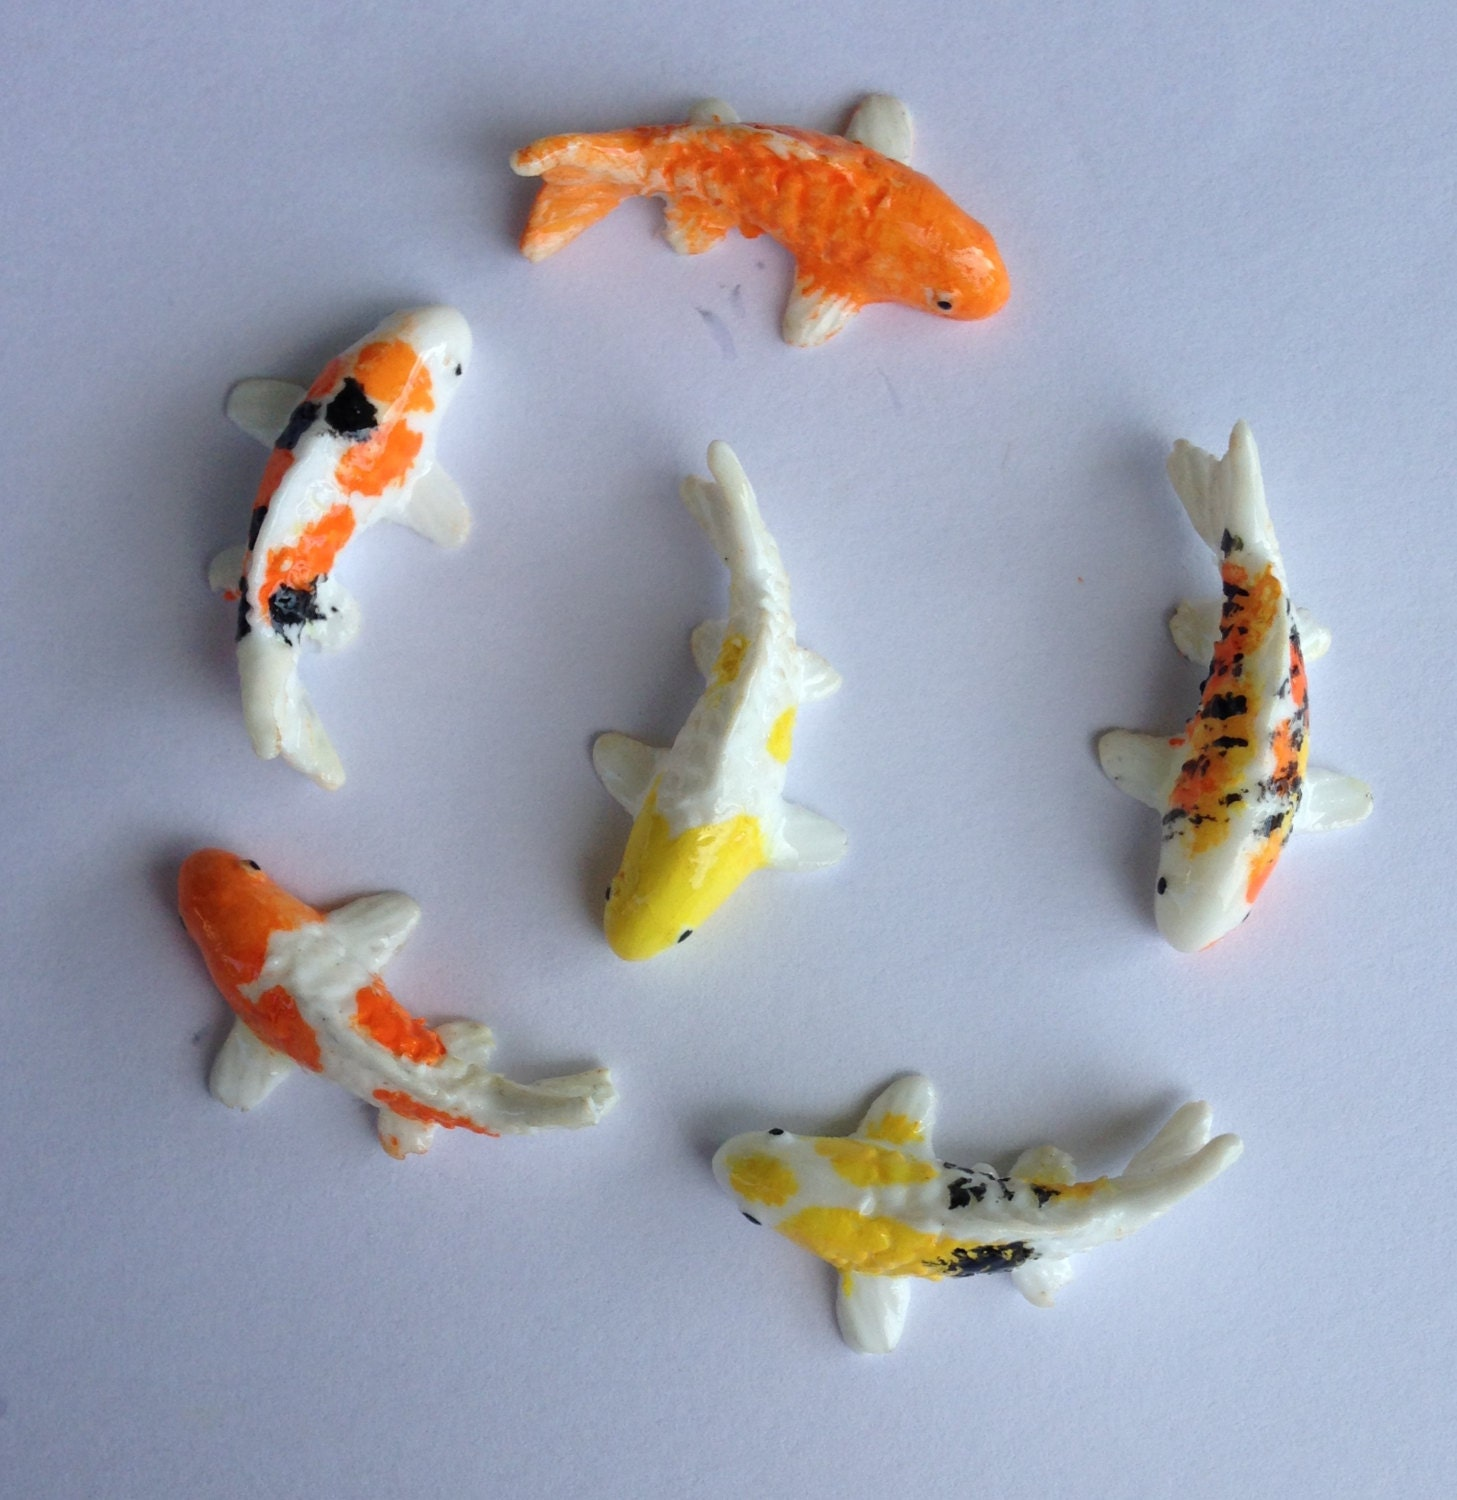 6 miniature koi fish for fairy garden or miniature set pond for Mini koi fish